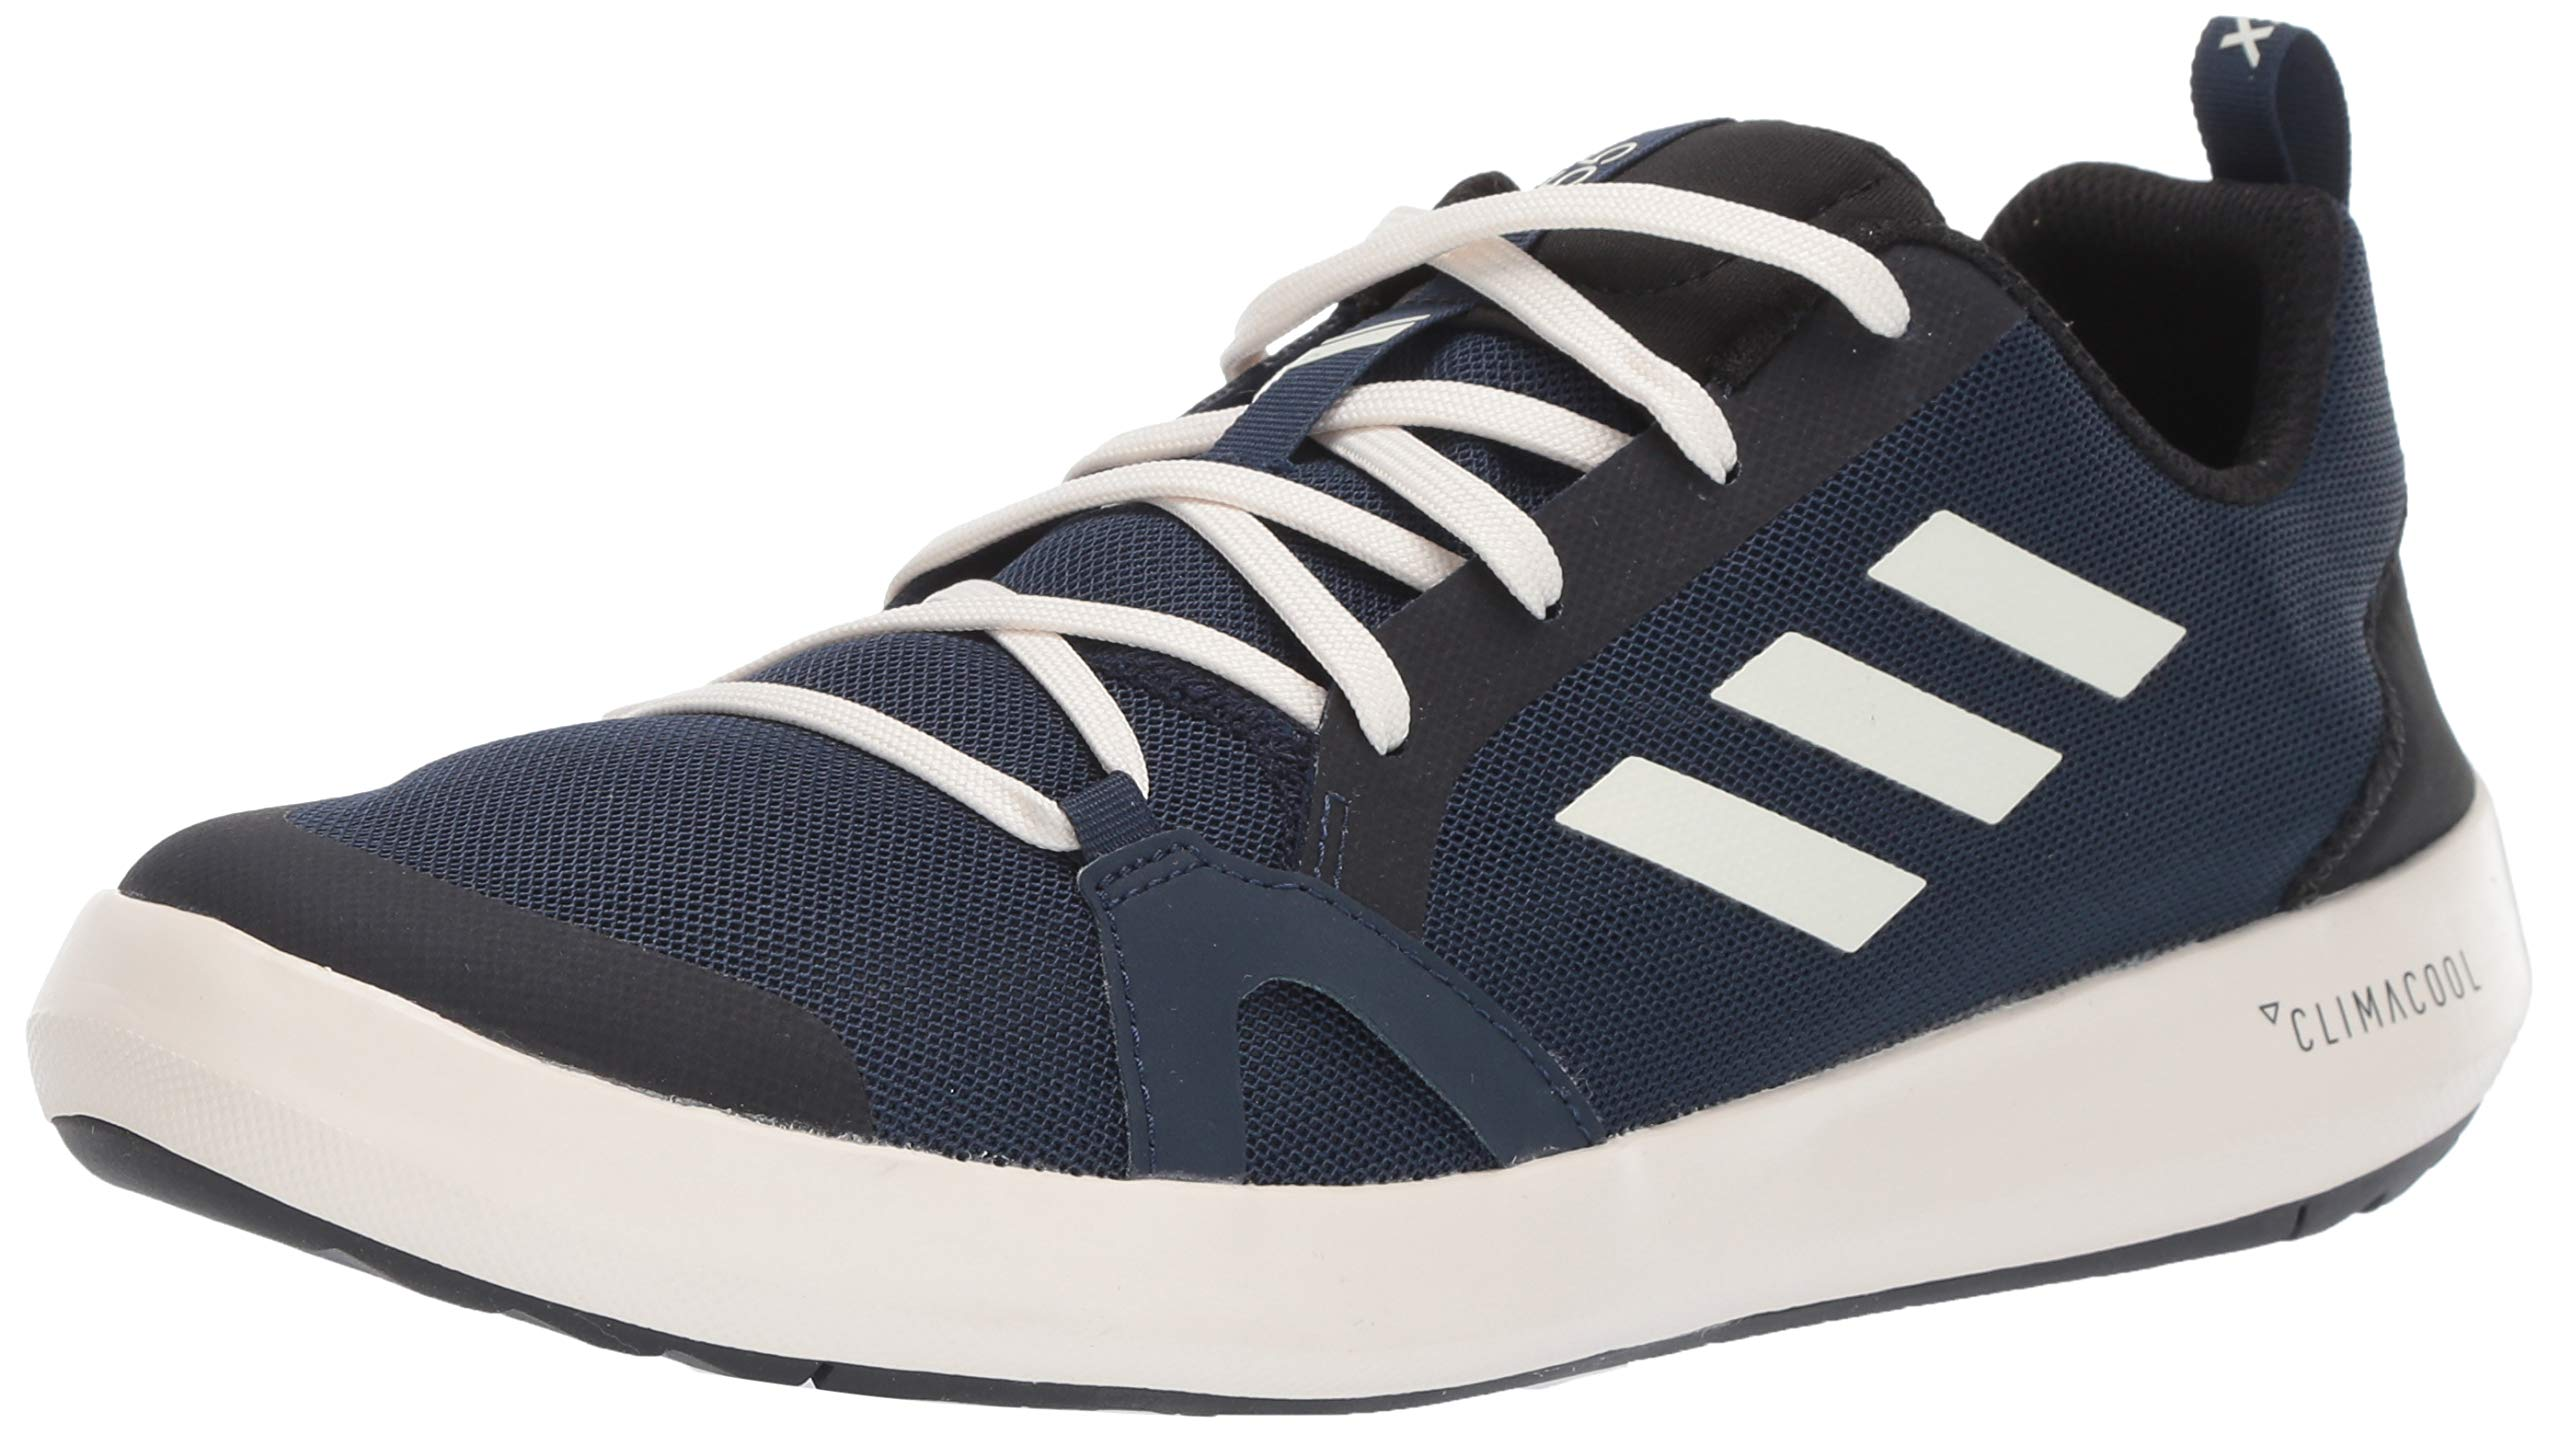 adidas Outdoor Men's Terrex Summer.RDY Boat Water Shoe, col Navy/chalk White/Black, 10 M US by adidas outdoor